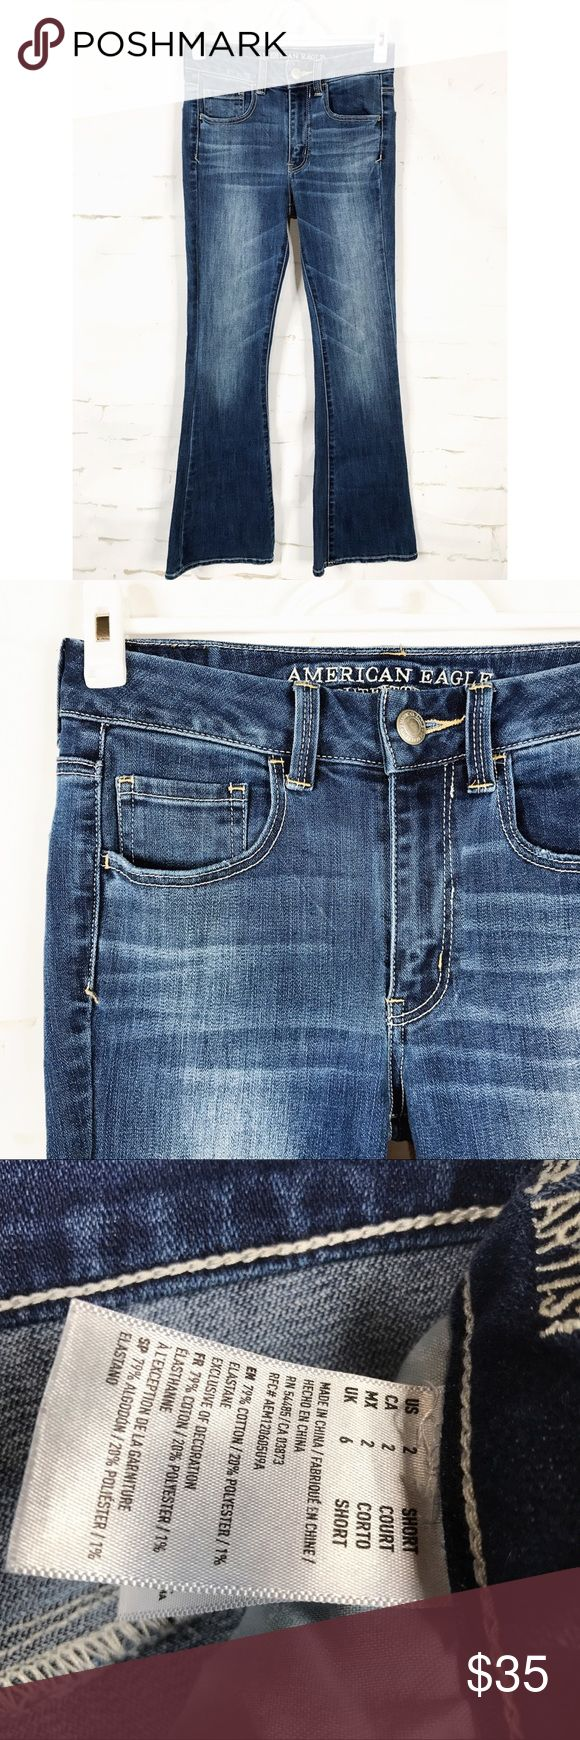 American Eagle Outfitters Super Stretch Jeans American Eagle Outfitters Super Stretch Jeans Size 2 American Eagle Outfitters Jeans Boot Cut